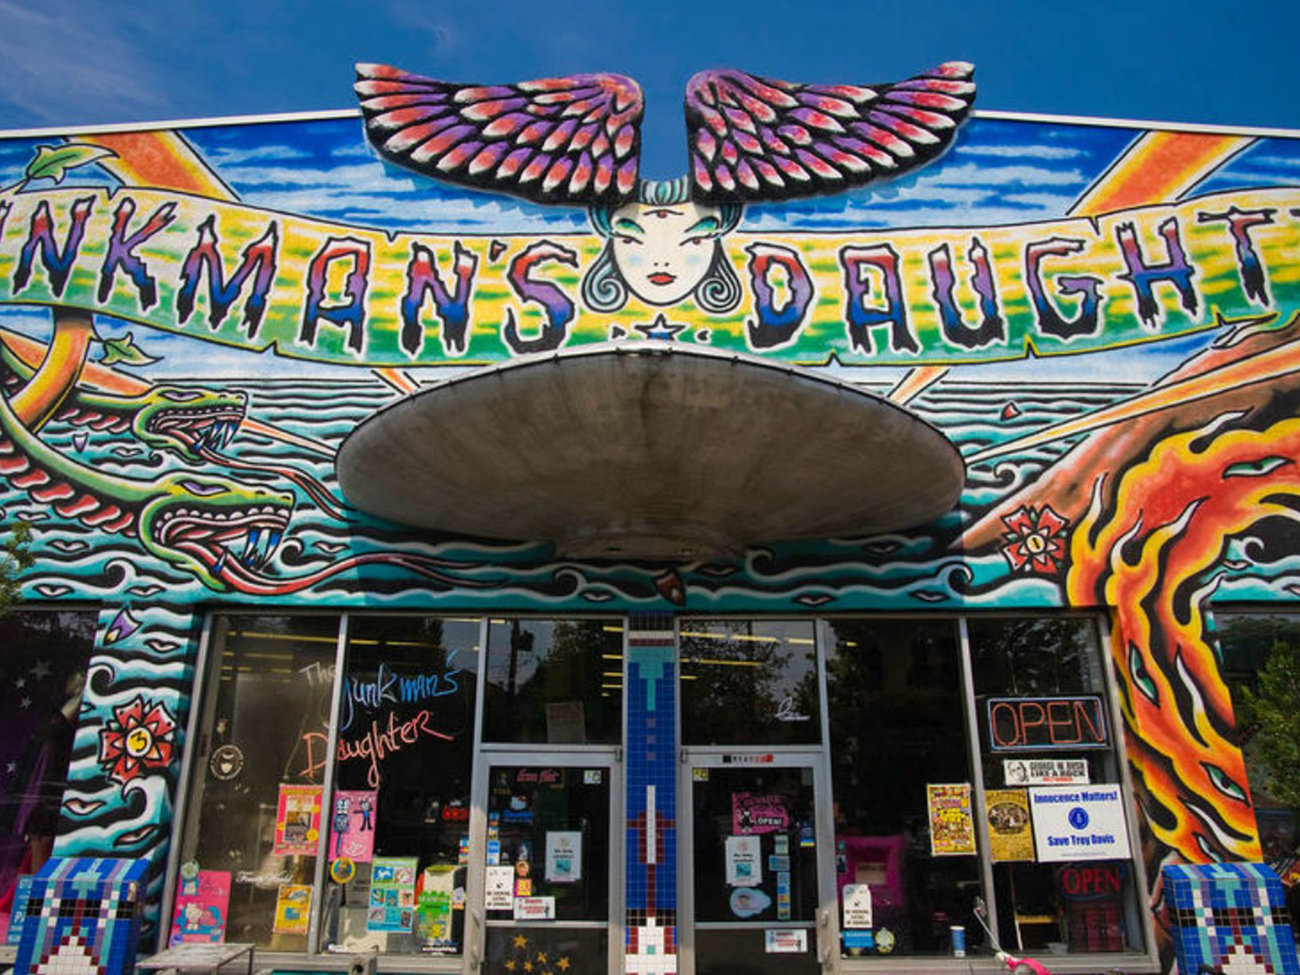 Junkman's Daughter Shop in Atlanta